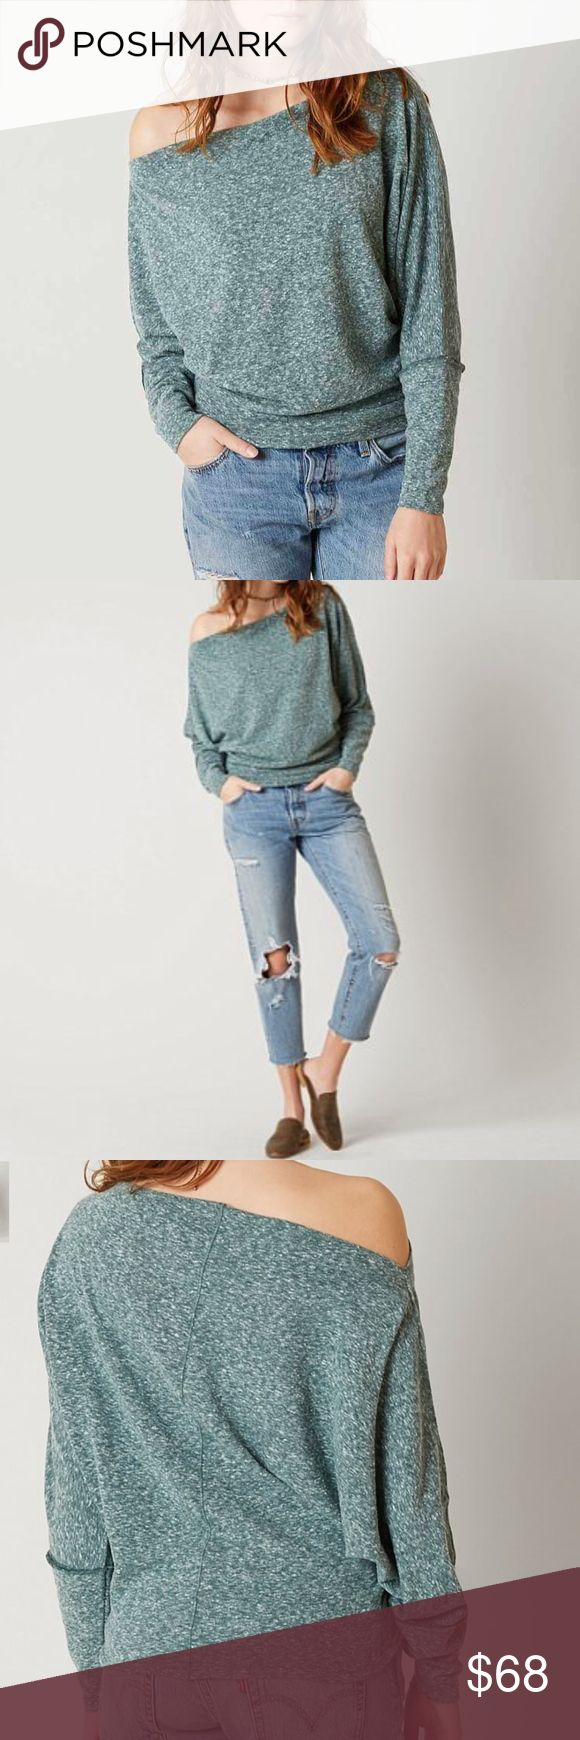 """FP FREE PEOPLE VALENCIA OFF THE SHOULDER TOP TEAL ITEM IS BRAND NEW WITH TAGS   Simple and virtually seamless, Free People's heathered jersey knit has a wide bateau neckline you can wear on the shoulders, as well, for a more draped effect in front.  DETAILS: Fits large Designed for a loose fit Bateau neck, off-the-shoulder design, three-quarter dolman sleeves, pullover style Approx. Center front length 26"""" Polyester/cotton Machine wash Imported Free People Tops Blouses"""